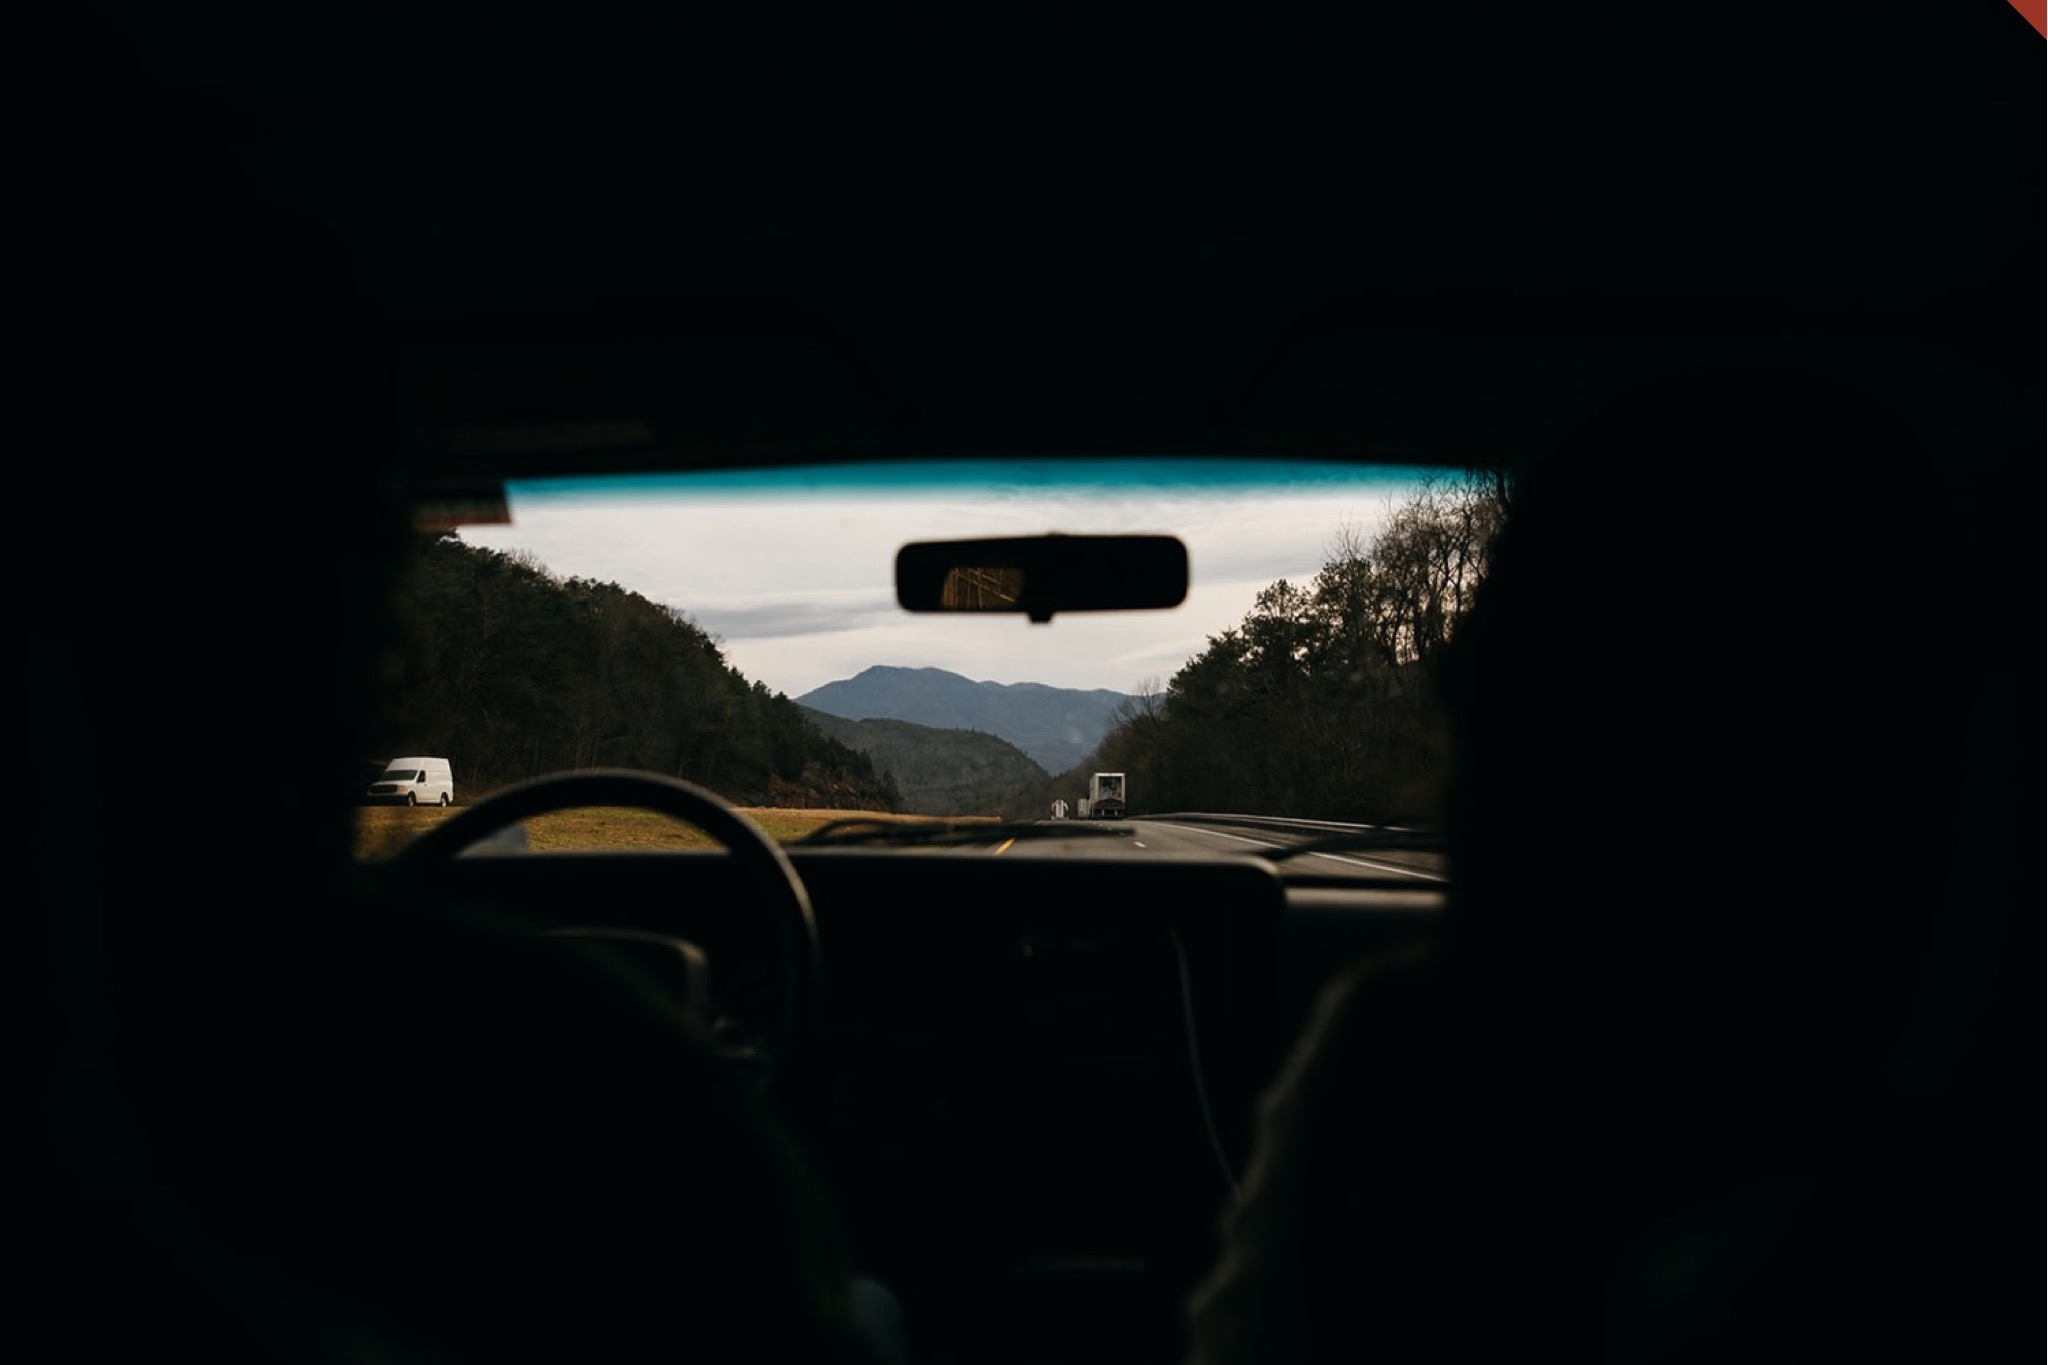 The view of hazy Blue Ridge Mountains through the windshield of an old Jeep.